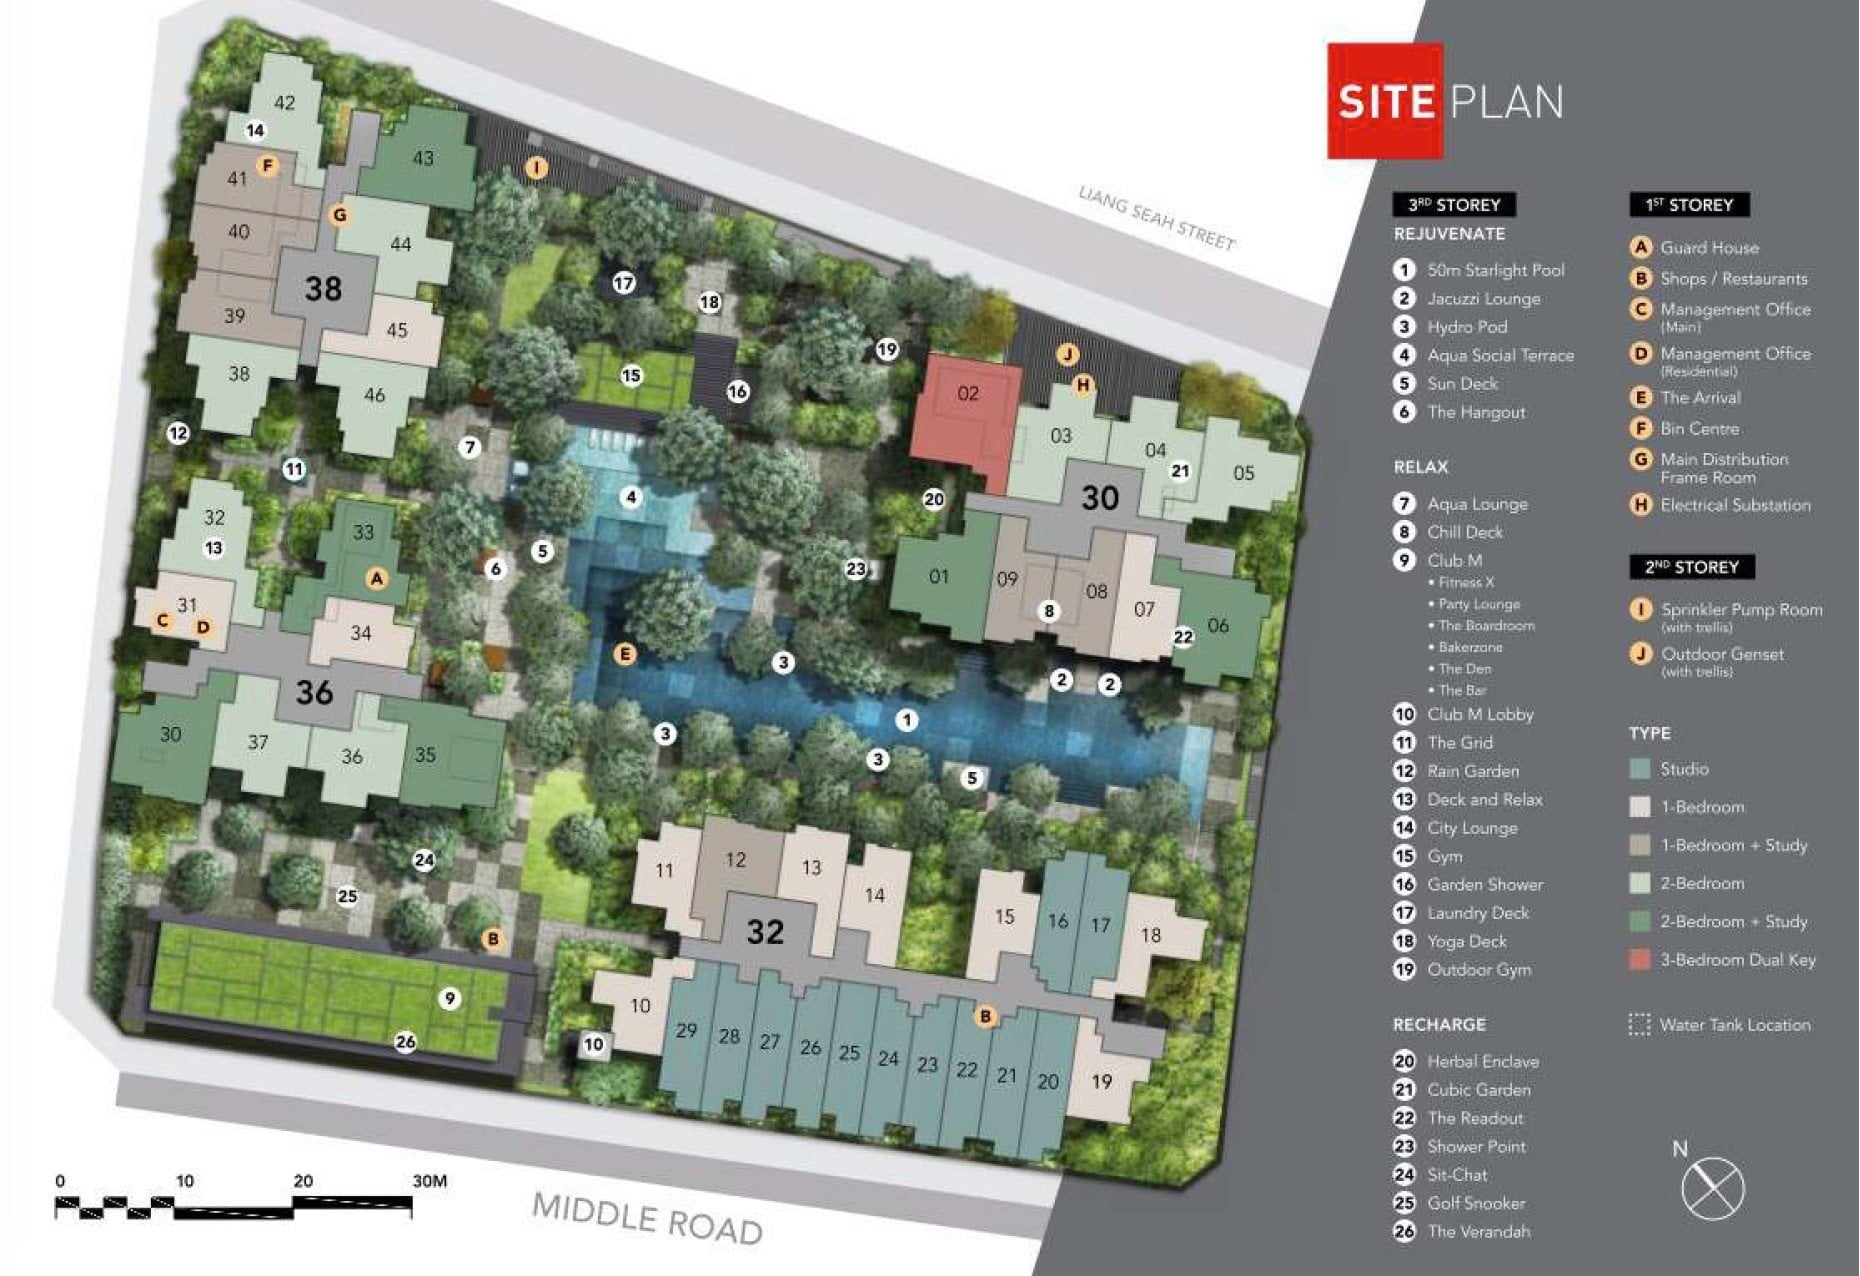 The M Bugis site plan